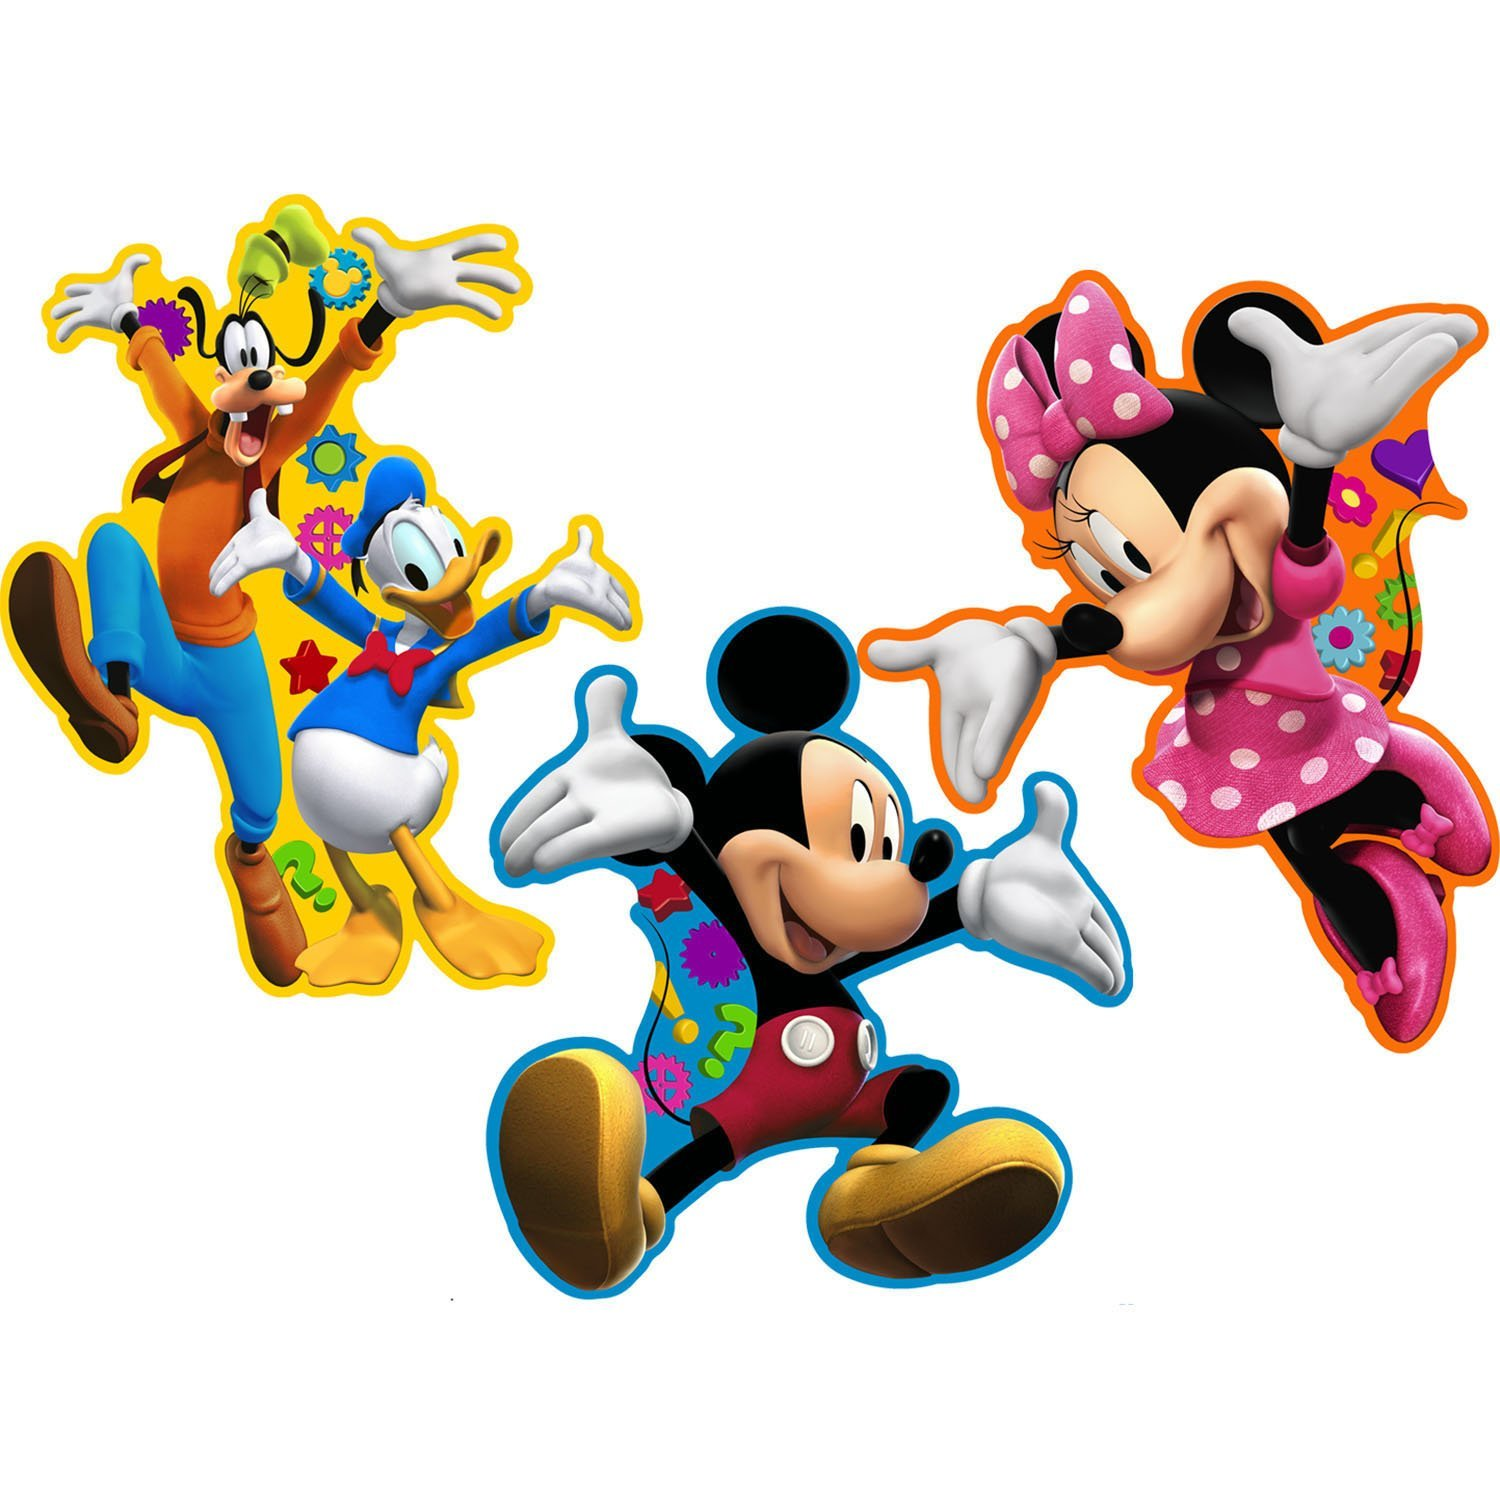 1500x1500 Free Mickey Mouse Clubhouse Clipart Image